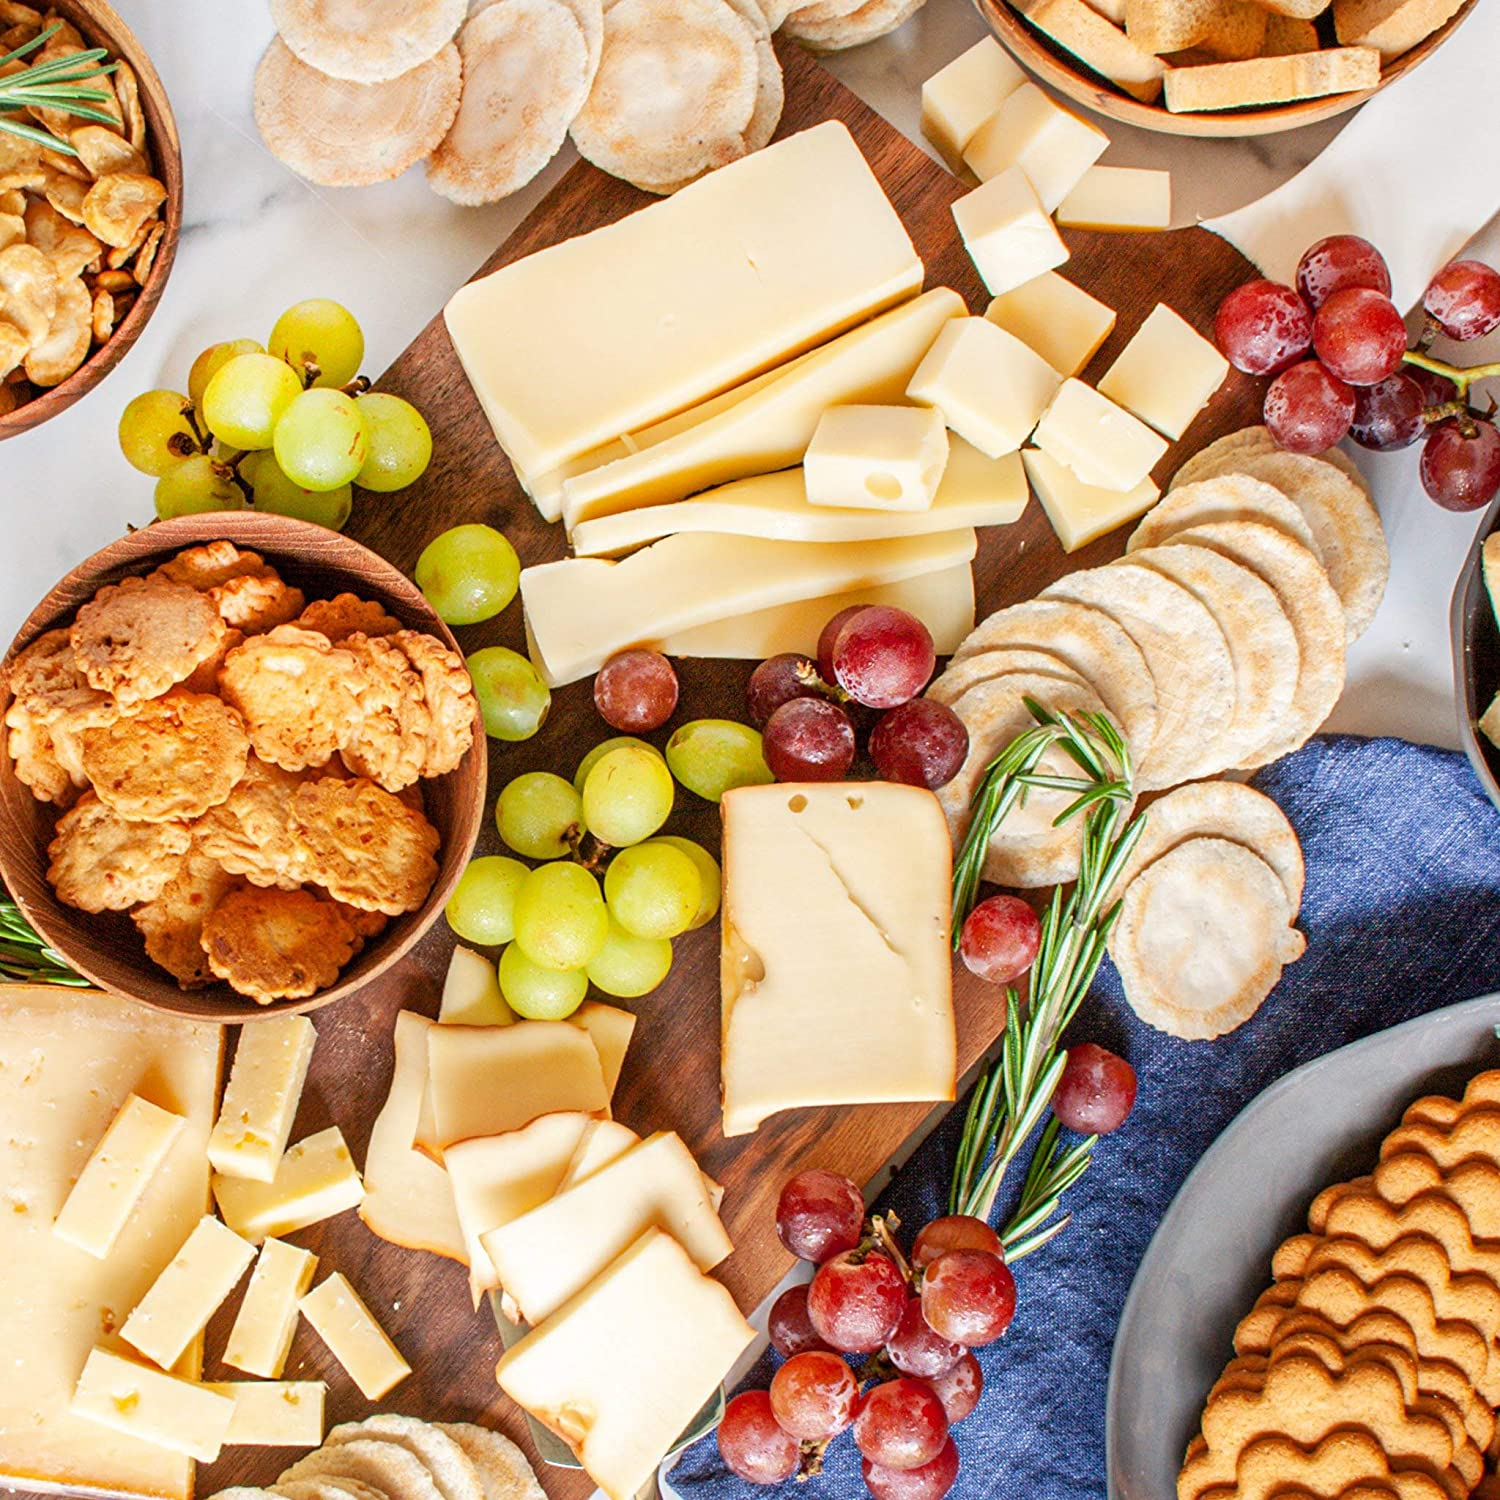 igourmet food sampler filled with International specialties - picnic perfect - includes an assortment of gourmet world cheeses, fried fava Beans, mini toasts, water crackers, shortbread cookies, sweedish gingersnaps and more